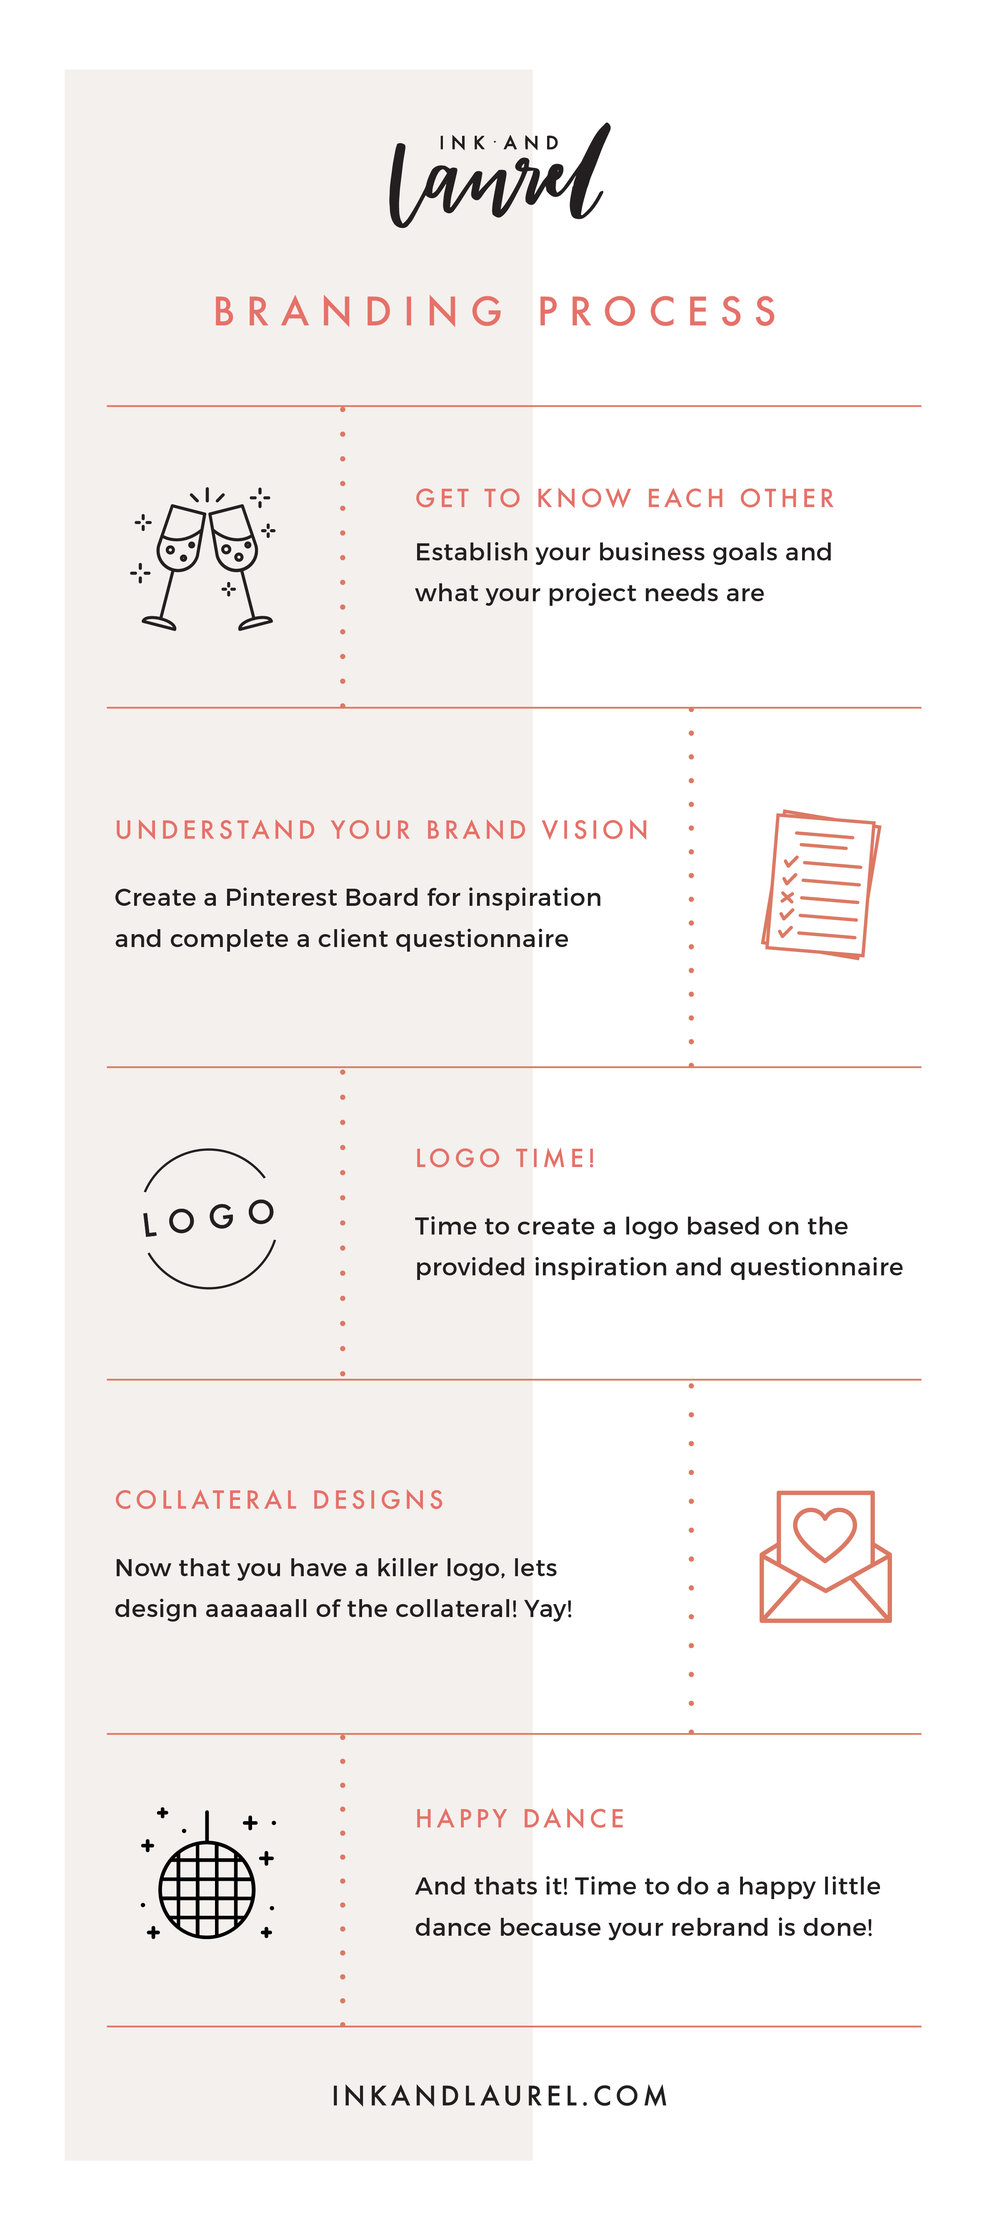 A step by step look into the branding process by Ink and Laurel